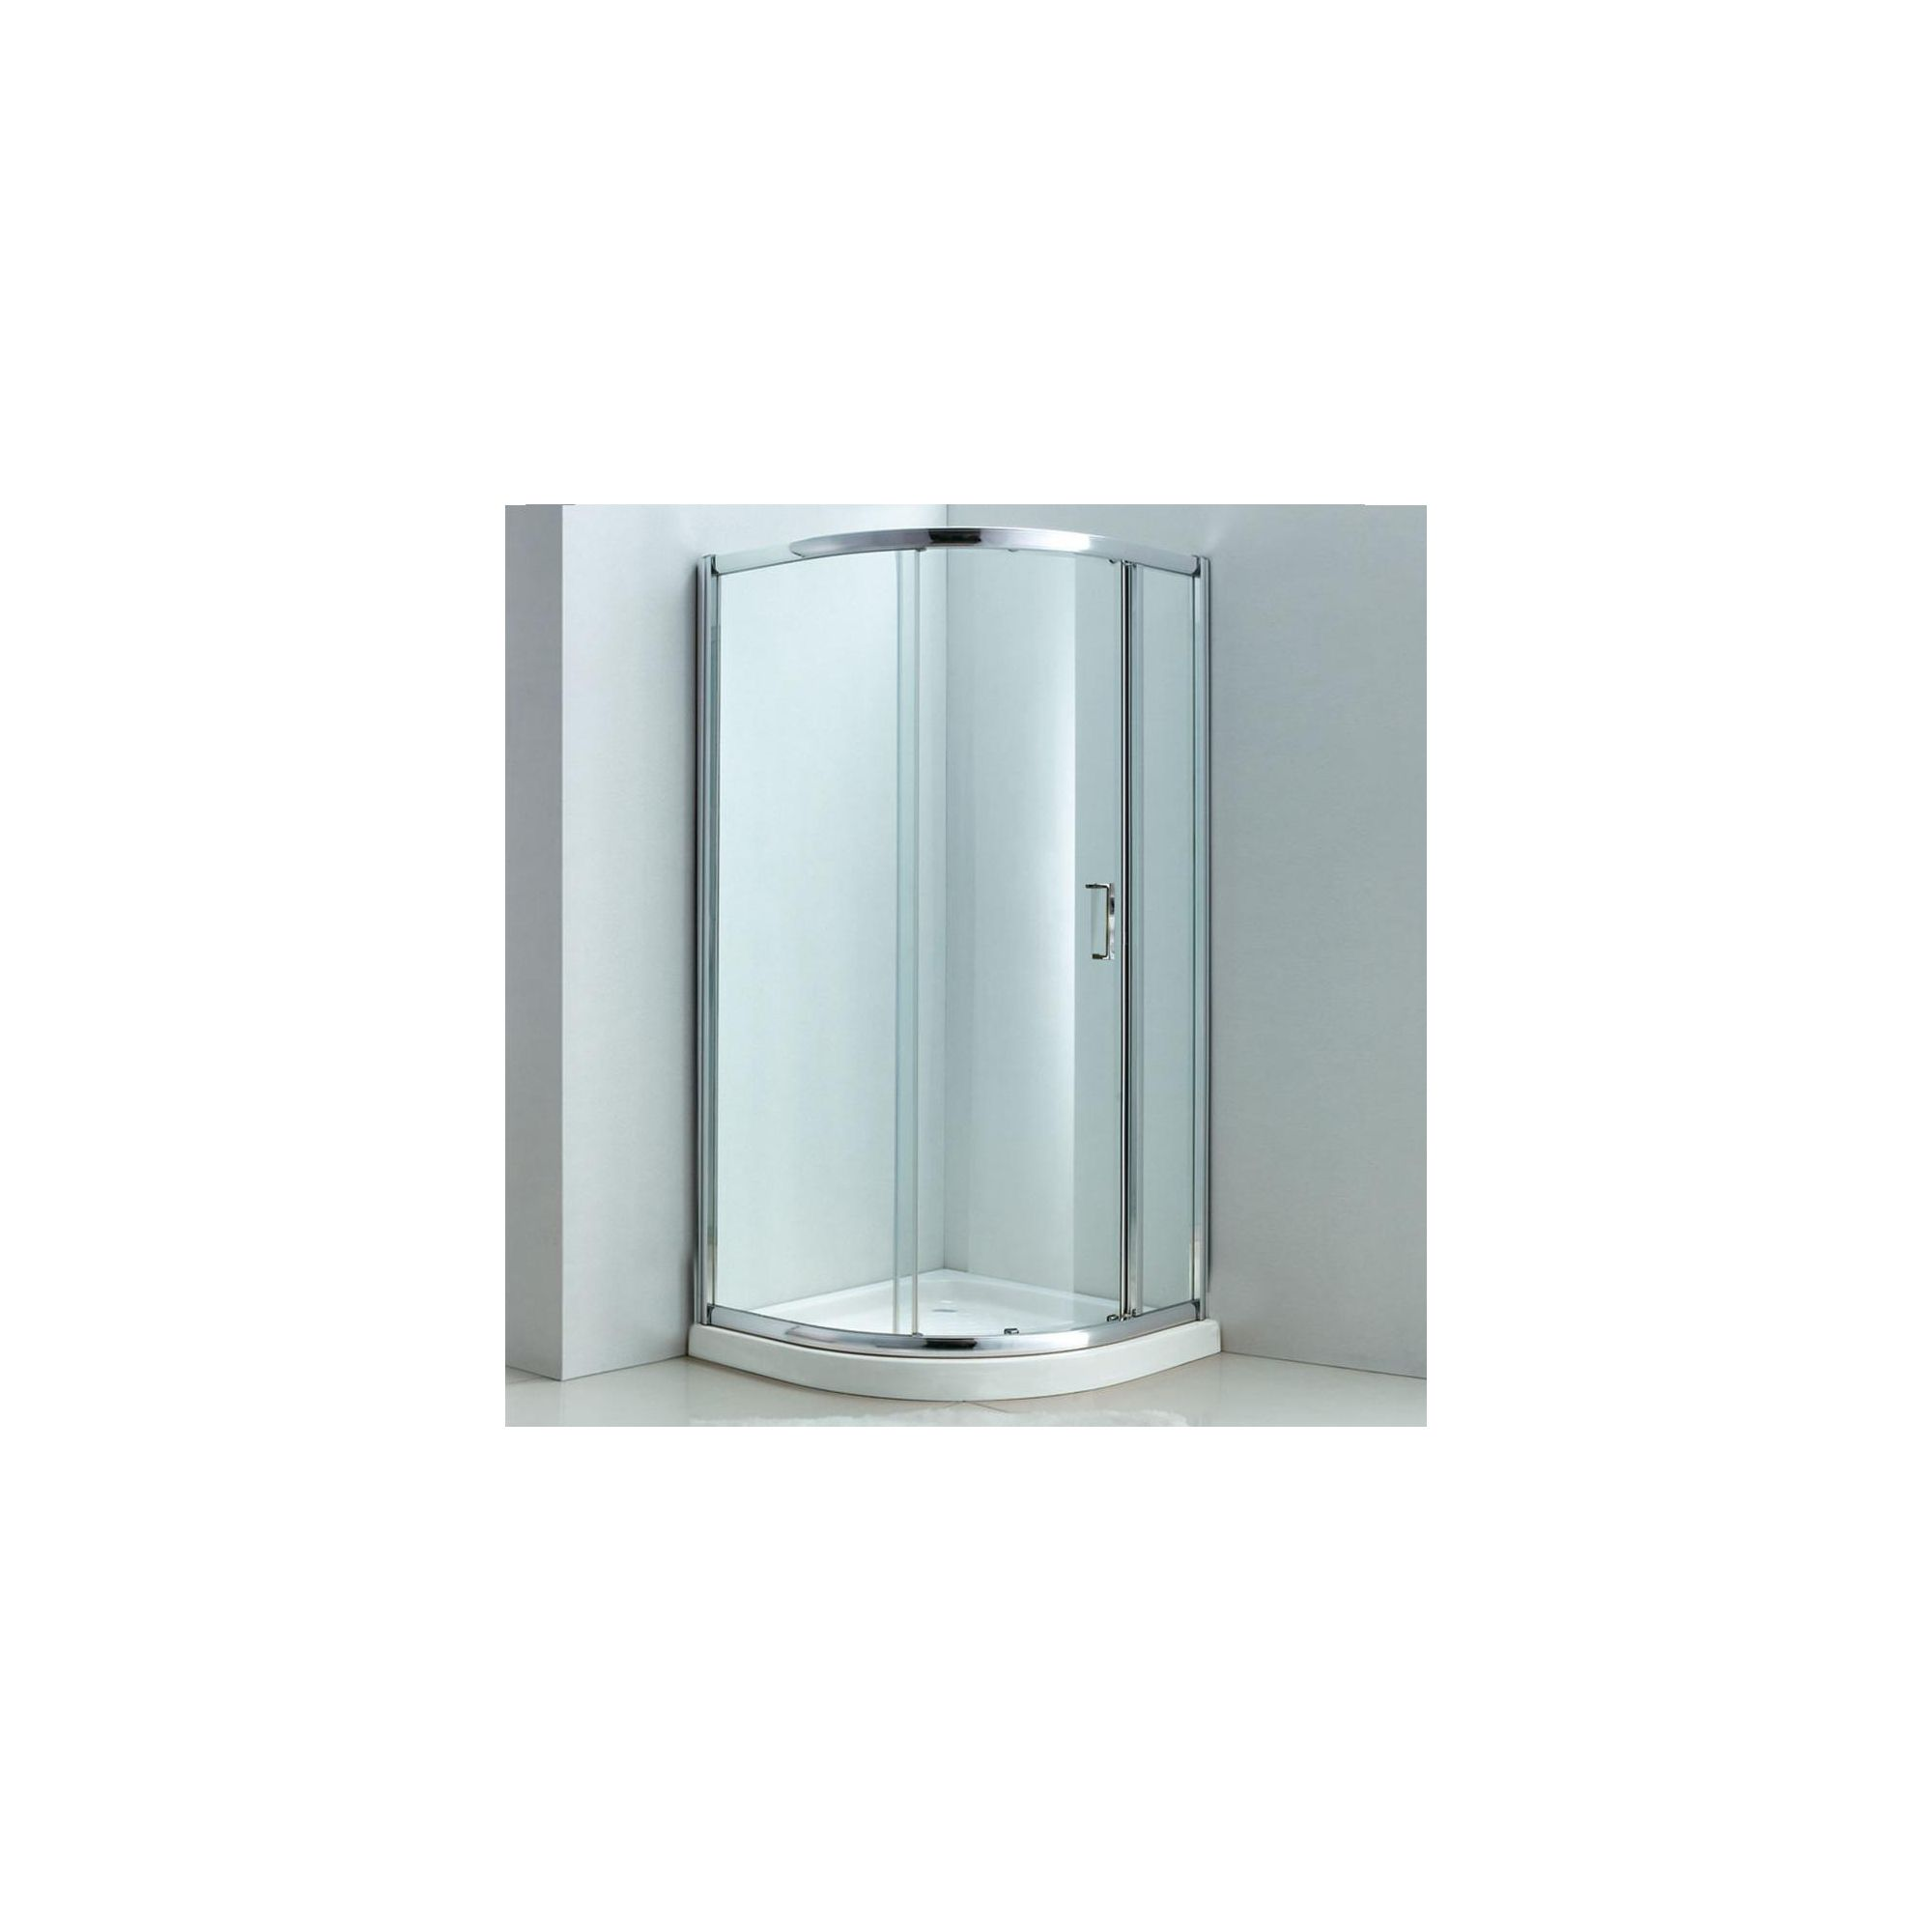 Duchy Style Single Offset Quadrant Shower Door, 1000mm x 800mm, 6mm Glass at Tesco Direct